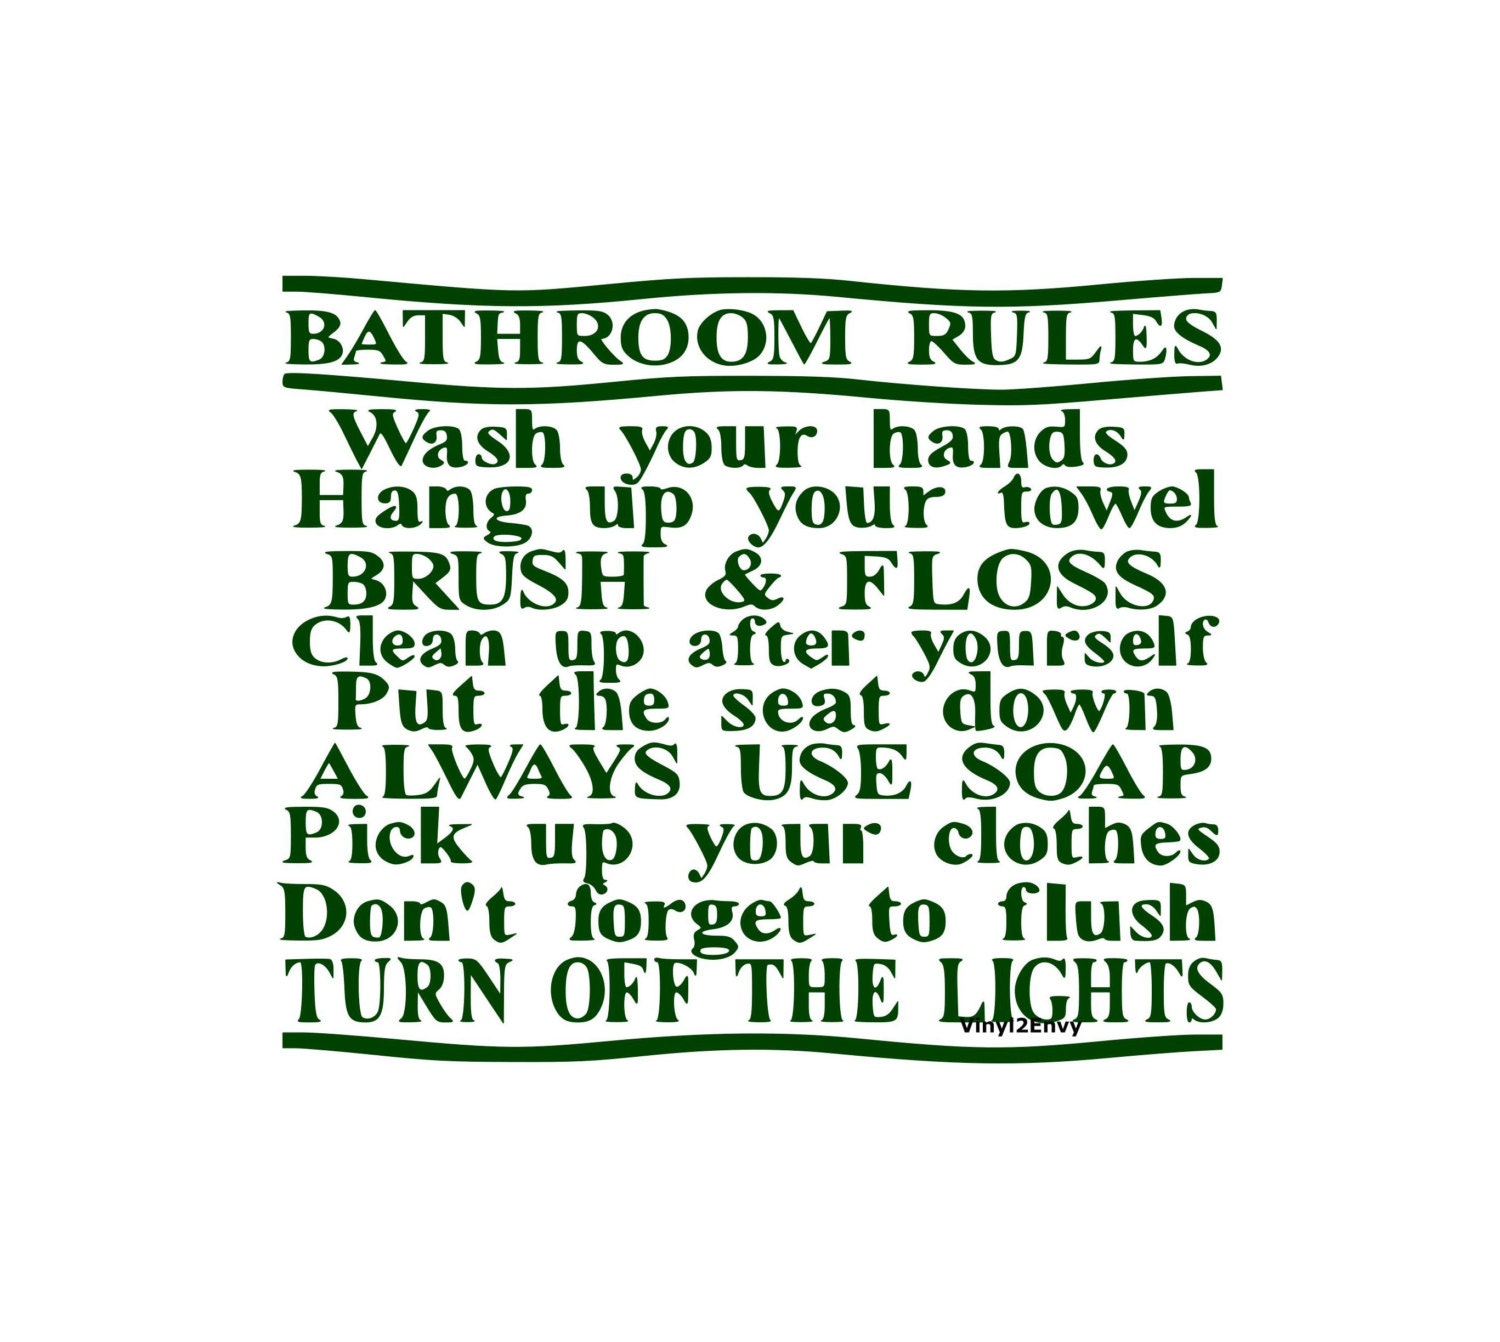 Bathroom rules wall decal vinyl wall decals wall decor for Bathroom decor rules